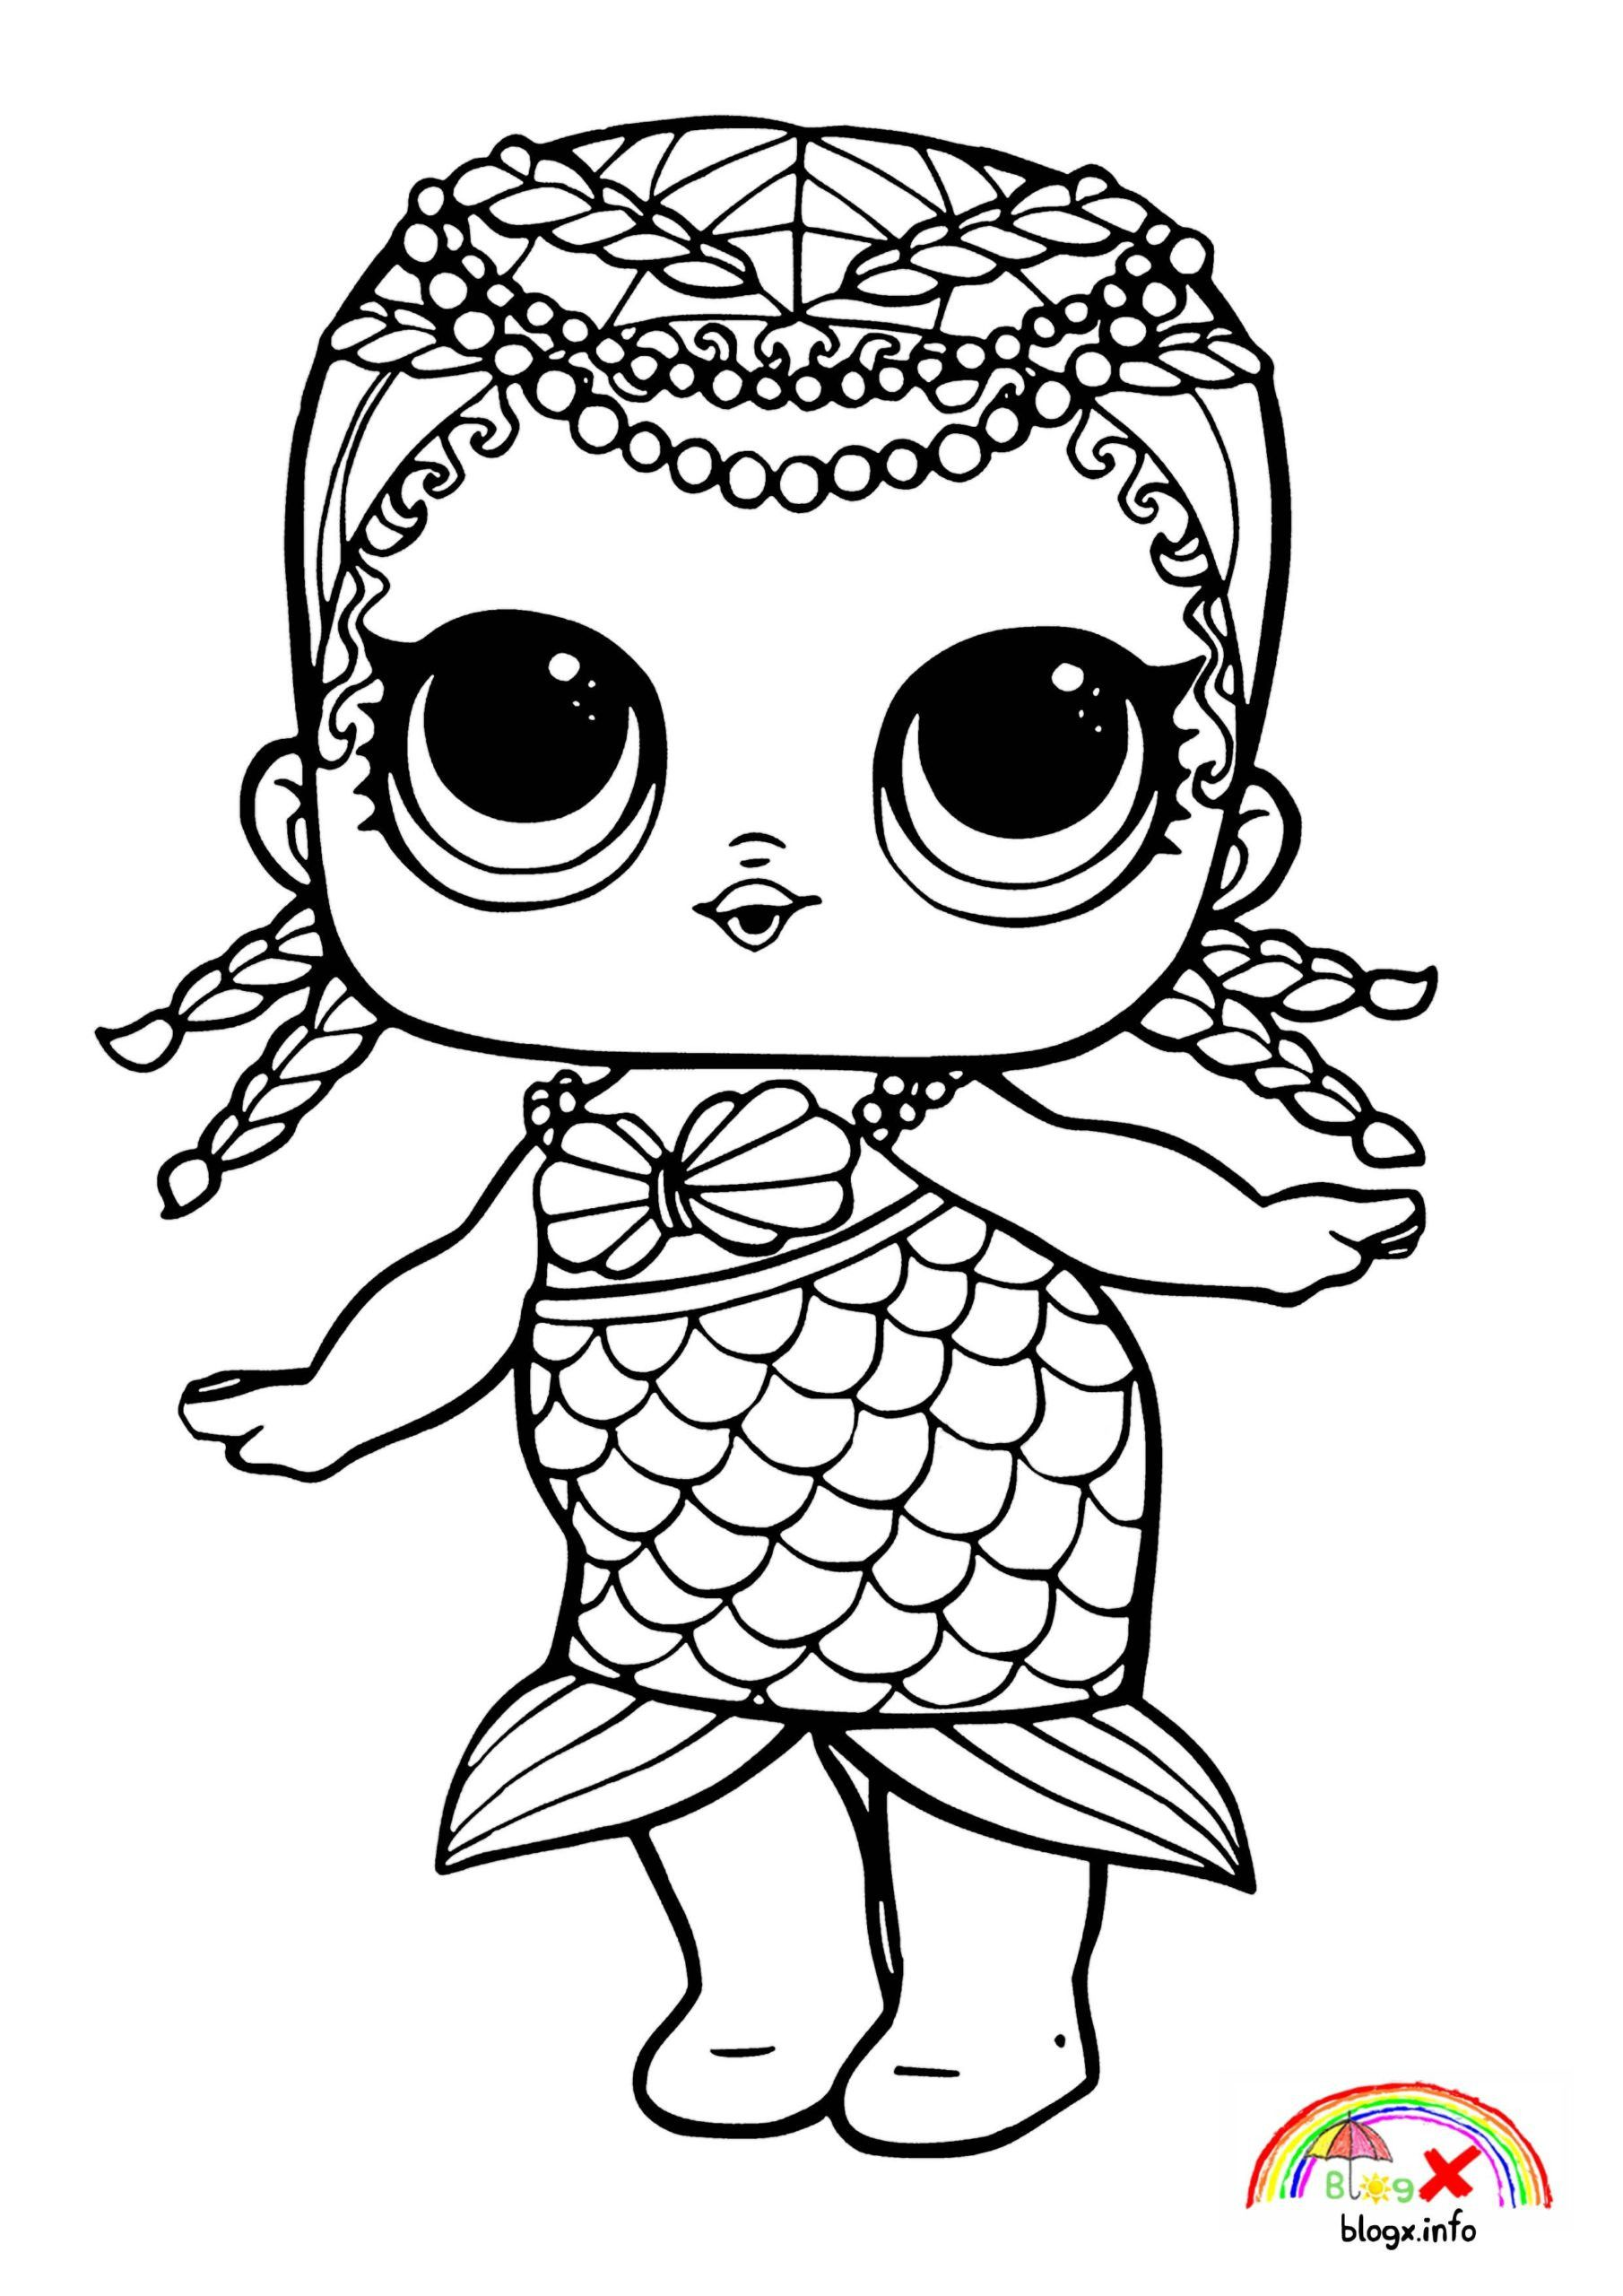 Lol Unicorn Coloring Page Youngandtae Com In 2020 Mermaid Coloring Pages Unicorn Coloring Pages Angel Coloring Pages